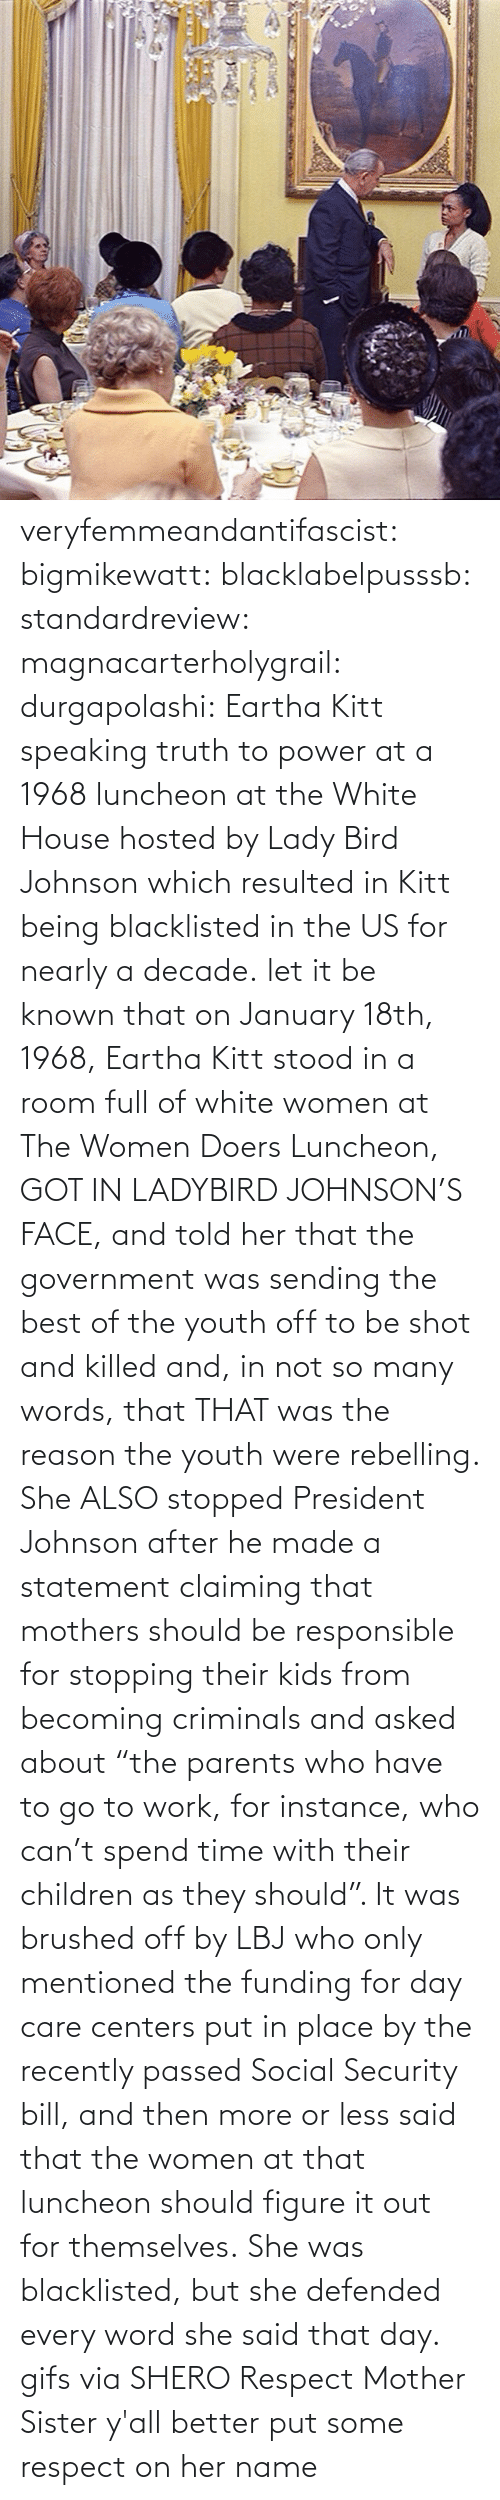 "She Was: veryfemmeandantifascist: bigmikewatt:  blacklabelpusssb:  standardreview:  magnacarterholygrail:  durgapolashi:  Eartha Kitt speaking truth to power at a 1968 luncheon at the White House hosted by Lady Bird Johnson which resulted in Kitt being blacklisted in the US for nearly a decade.  let it be known that on January 18th, 1968, Eartha Kitt stood in a room full of white women at The Women Doers Luncheon, GOT IN LADYBIRD JOHNSON'S FACE, and told her that the government was sending the best of the youth off to be shot and killed and, in not so many words, that THAT was the reason the youth were rebelling. She ALSO stopped President Johnson after he made a statement claiming that mothers should be responsible for stopping their kids from becoming criminals and asked about ""the parents who have to go to work, for instance, who can't spend time with their children as they should"". It was brushed off by LBJ who only mentioned the funding for day care centers put in place by the recently passed Social Security bill, and then more or less said that the women at that luncheon should figure it out for themselves. She was blacklisted, but she defended every word she said that day.    gifs via  SHERO   Respect Mother Sister  y'all better put some respect on her name"